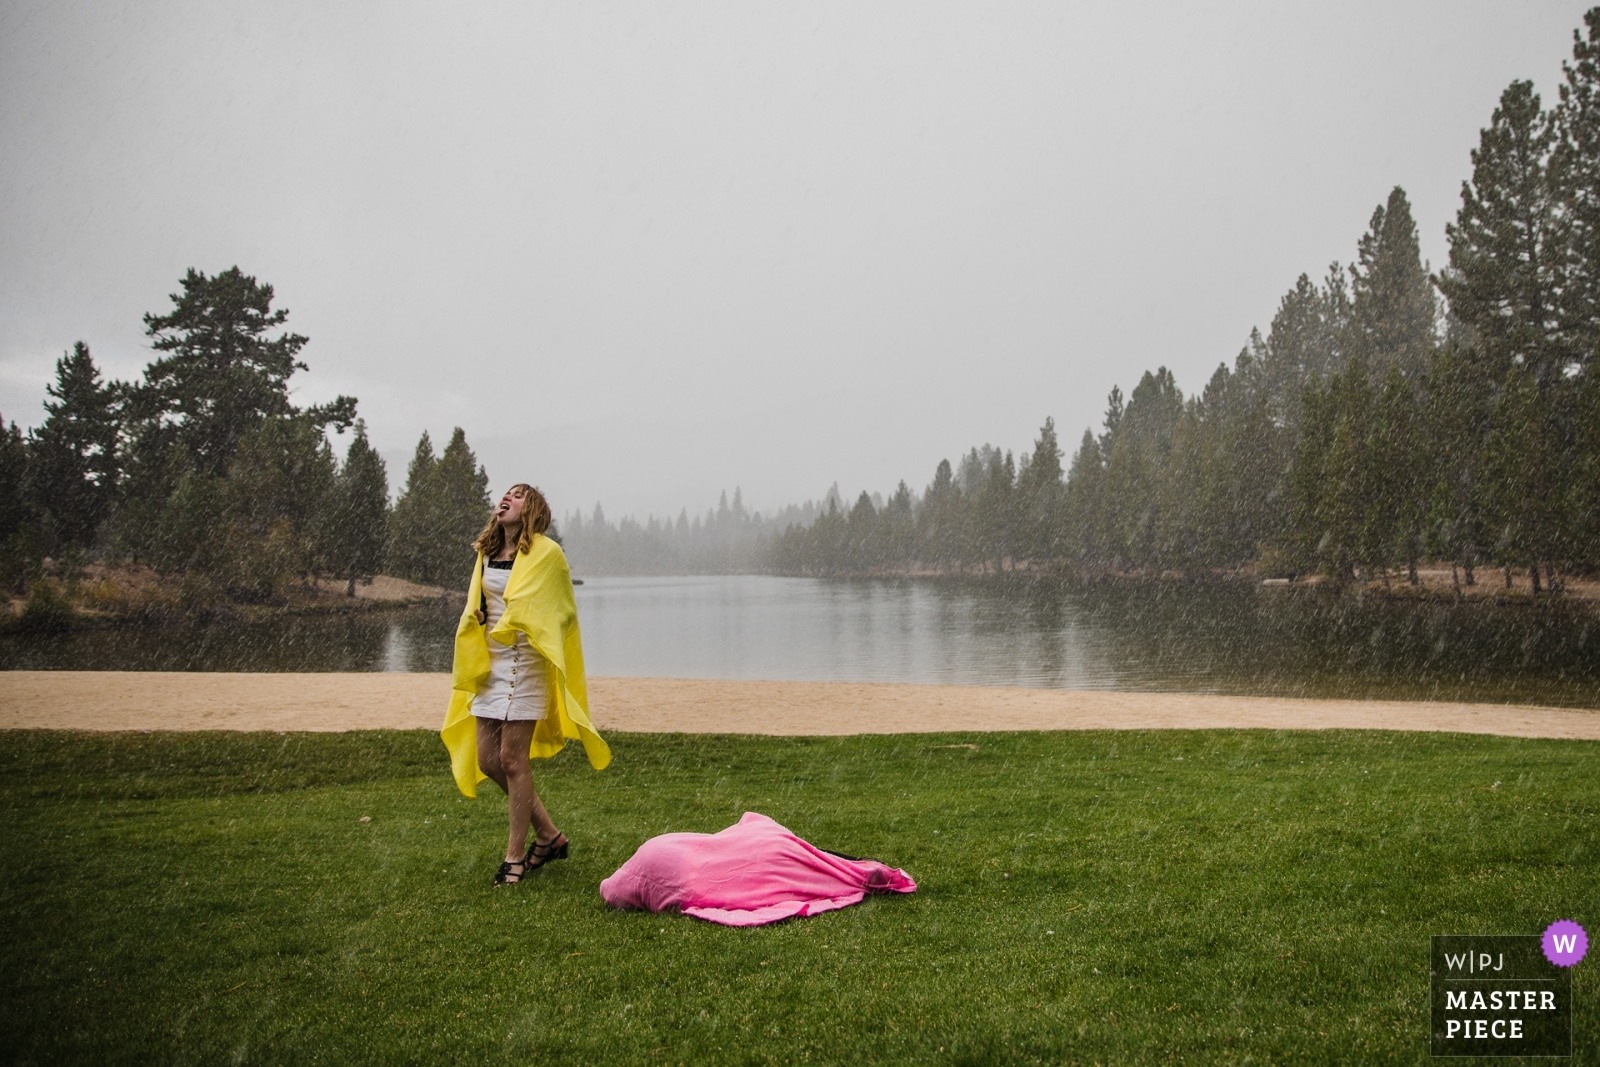 Young wedding guests play in an unexpected September snowstorm, shielded by colorful blankets. - Lake Tahoe, California - Northern Wedding Photography -    Tahoe Paradise Park: South Lake Tahoe, CA